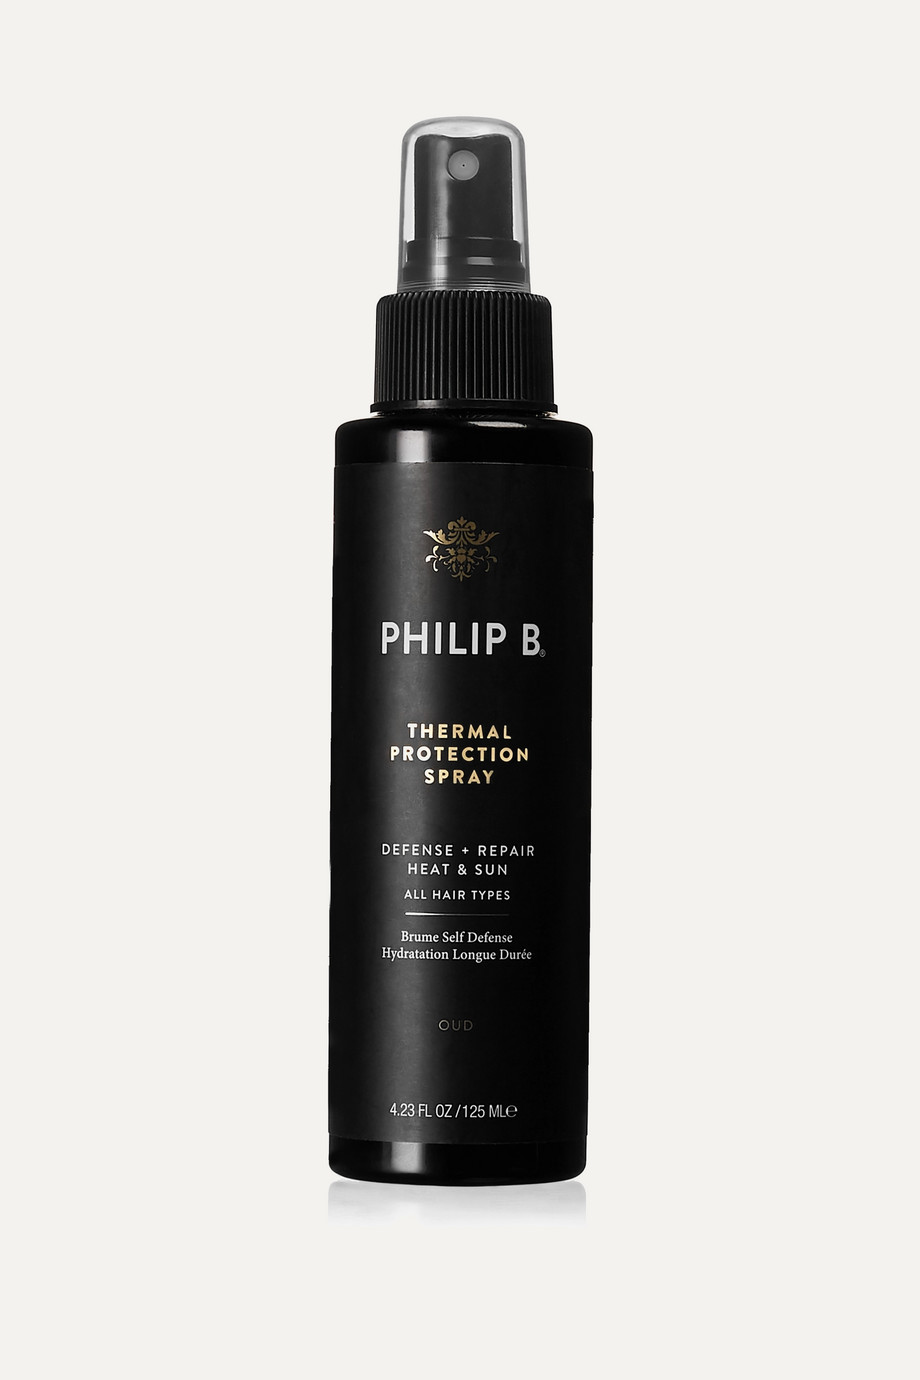 Oud Royal Thermal Protection Spray, 125ml, by Philip B